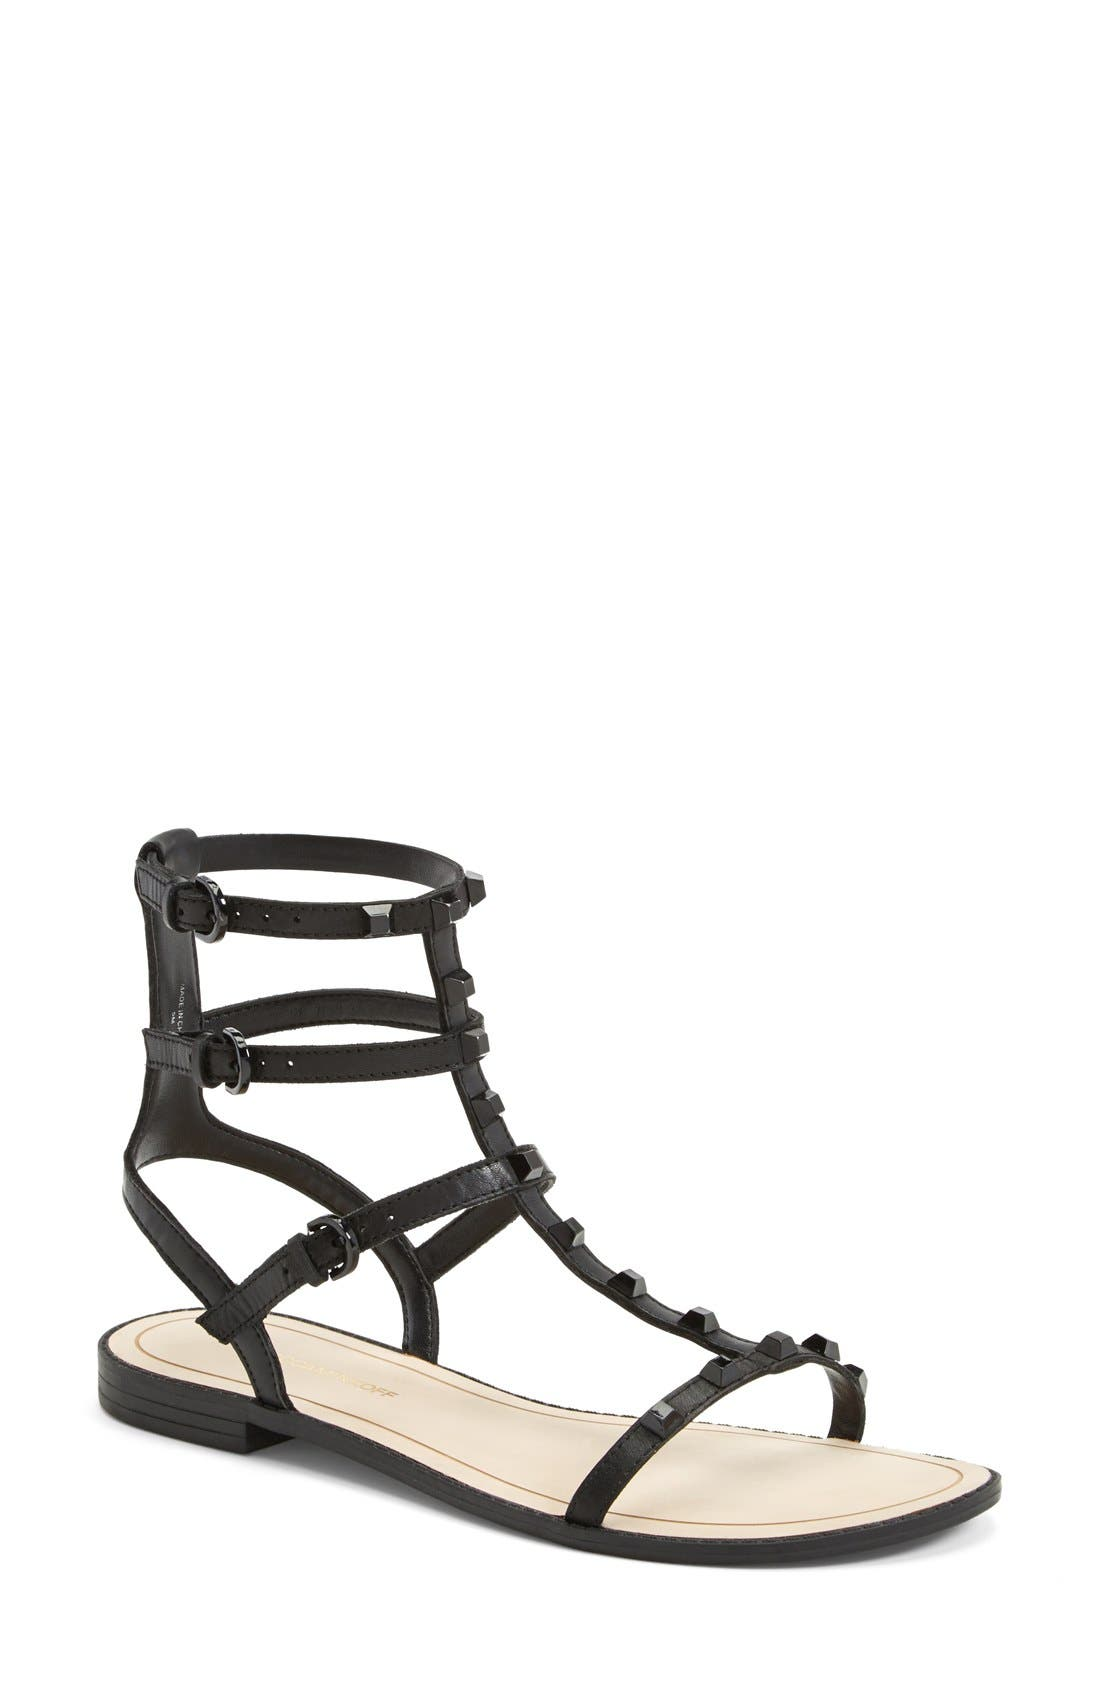 'Georgina' Studded Leather Sandal,                             Main thumbnail 1, color,                             Black